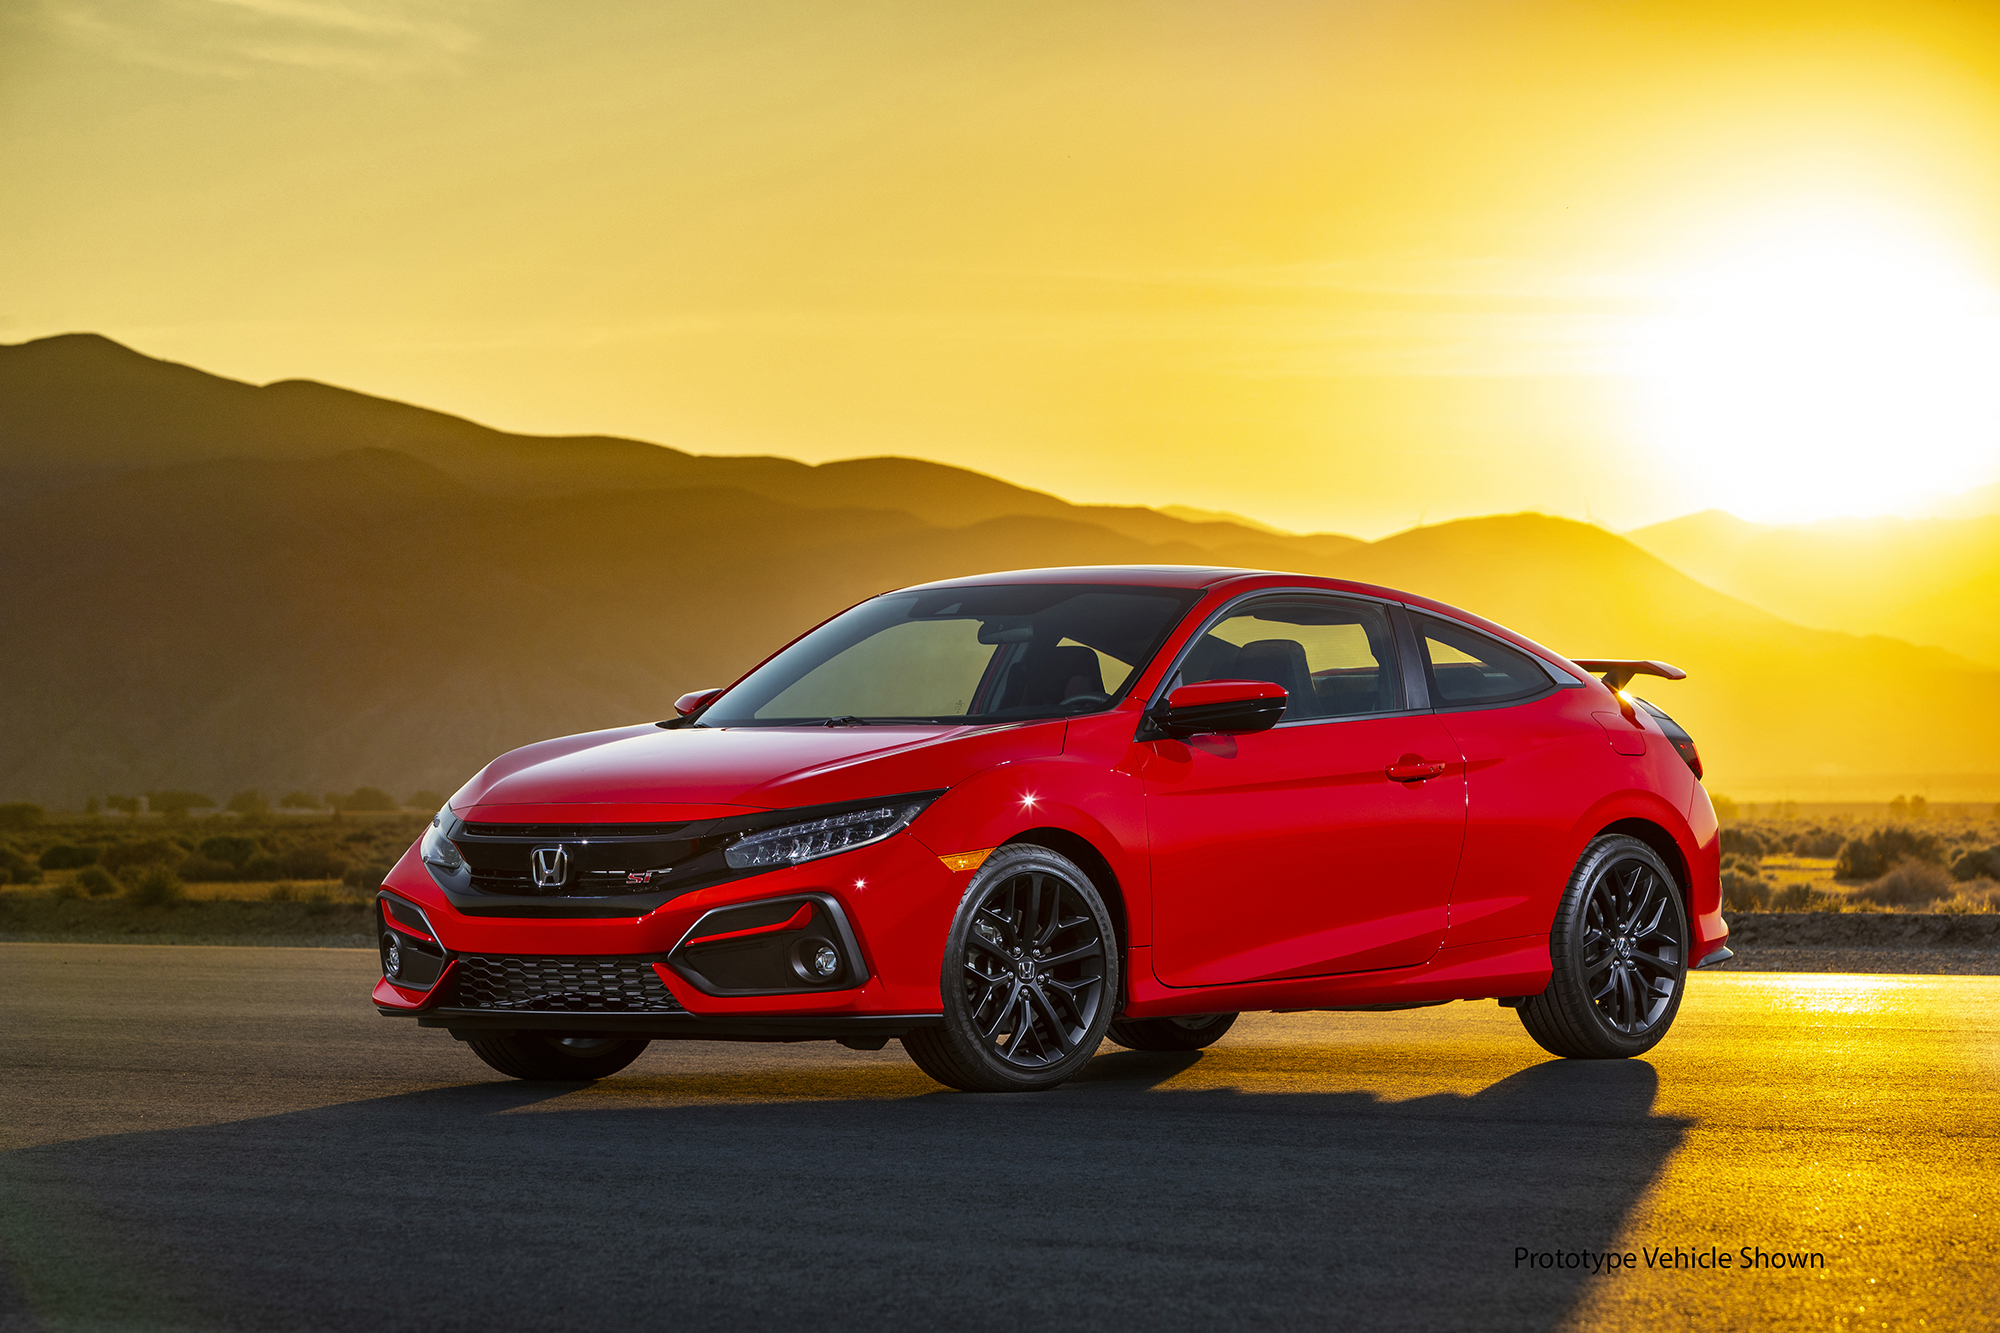 Honda Civic Si Updates Keep Rolling Into 2020